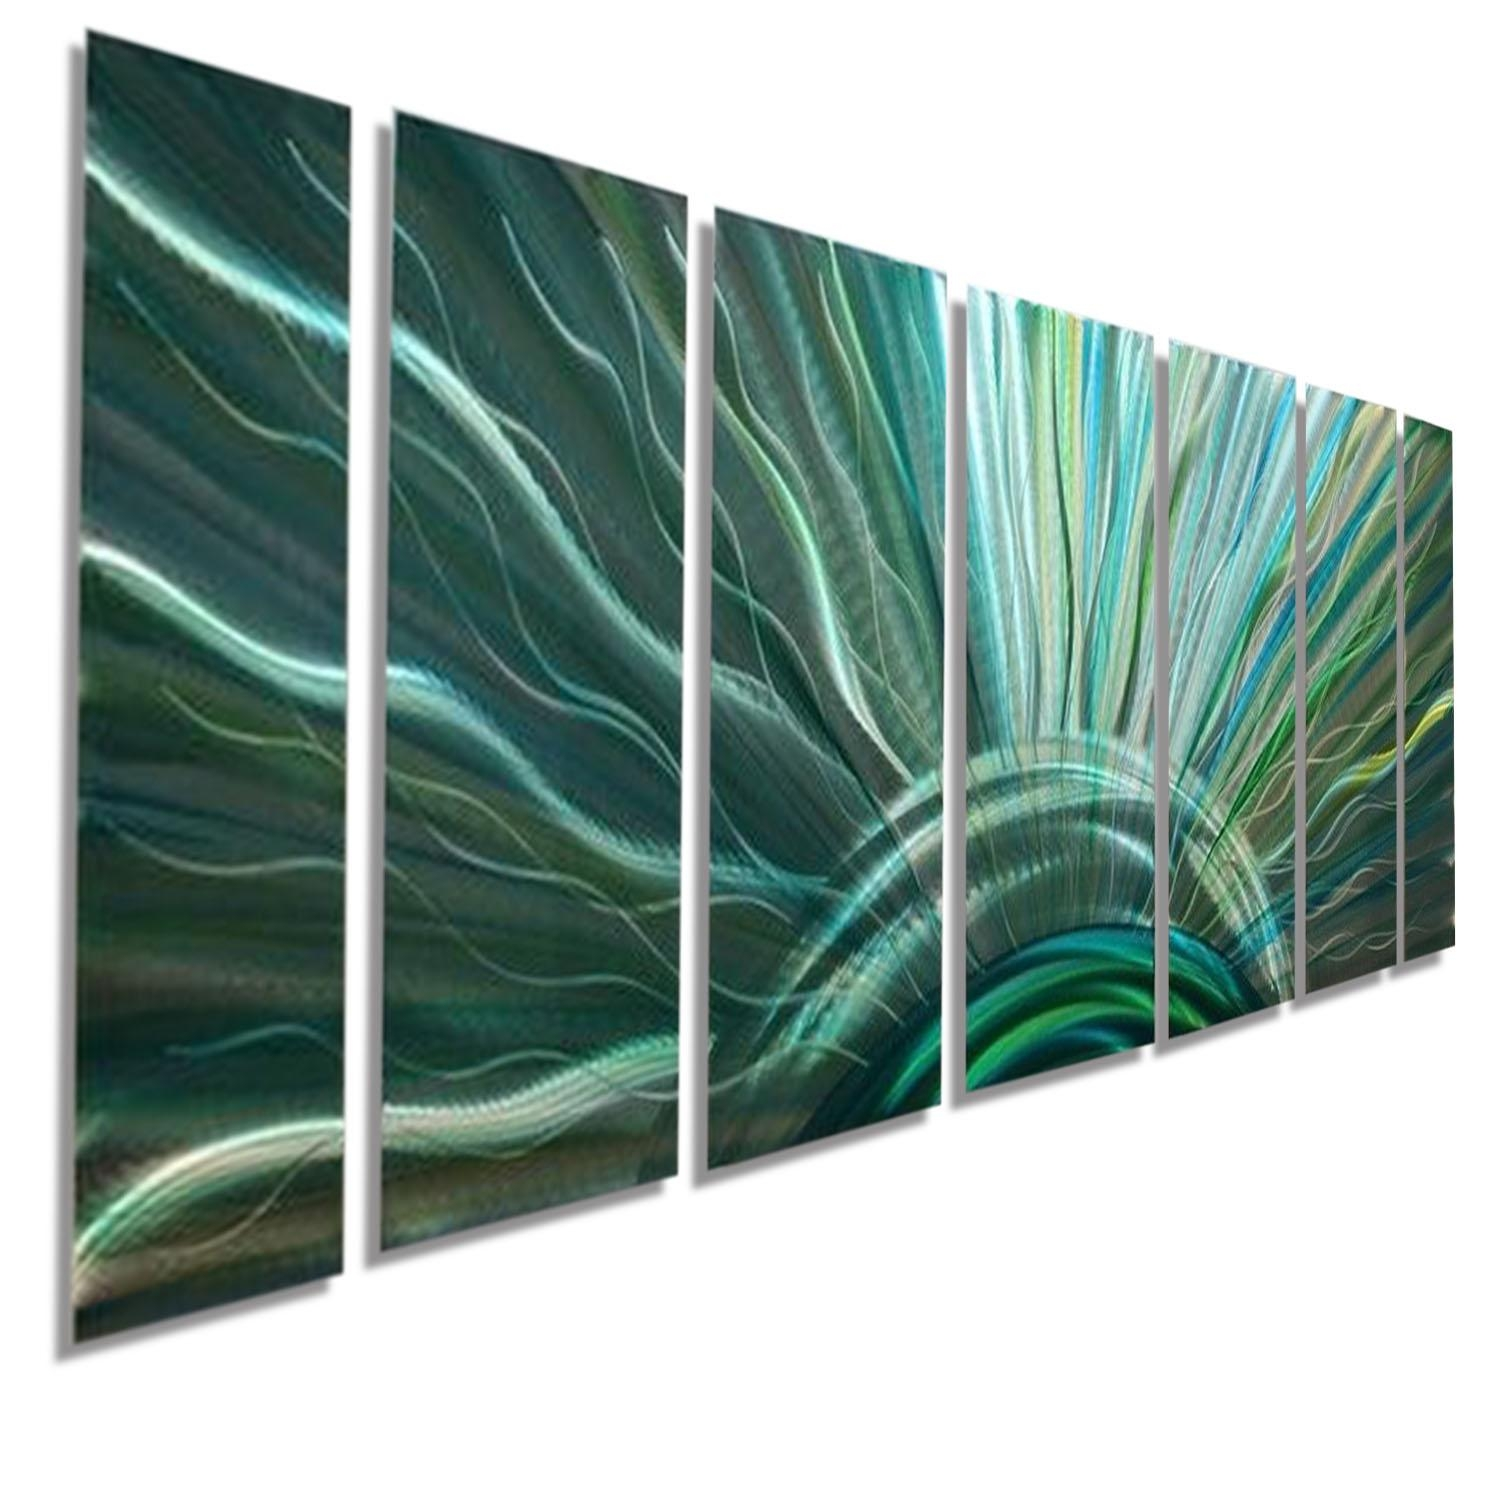 Blue Moon – Silver With Blue & Green Fusion Modern Metal Wall Art Inside Teal Metal Wall Art (View 18 of 20)